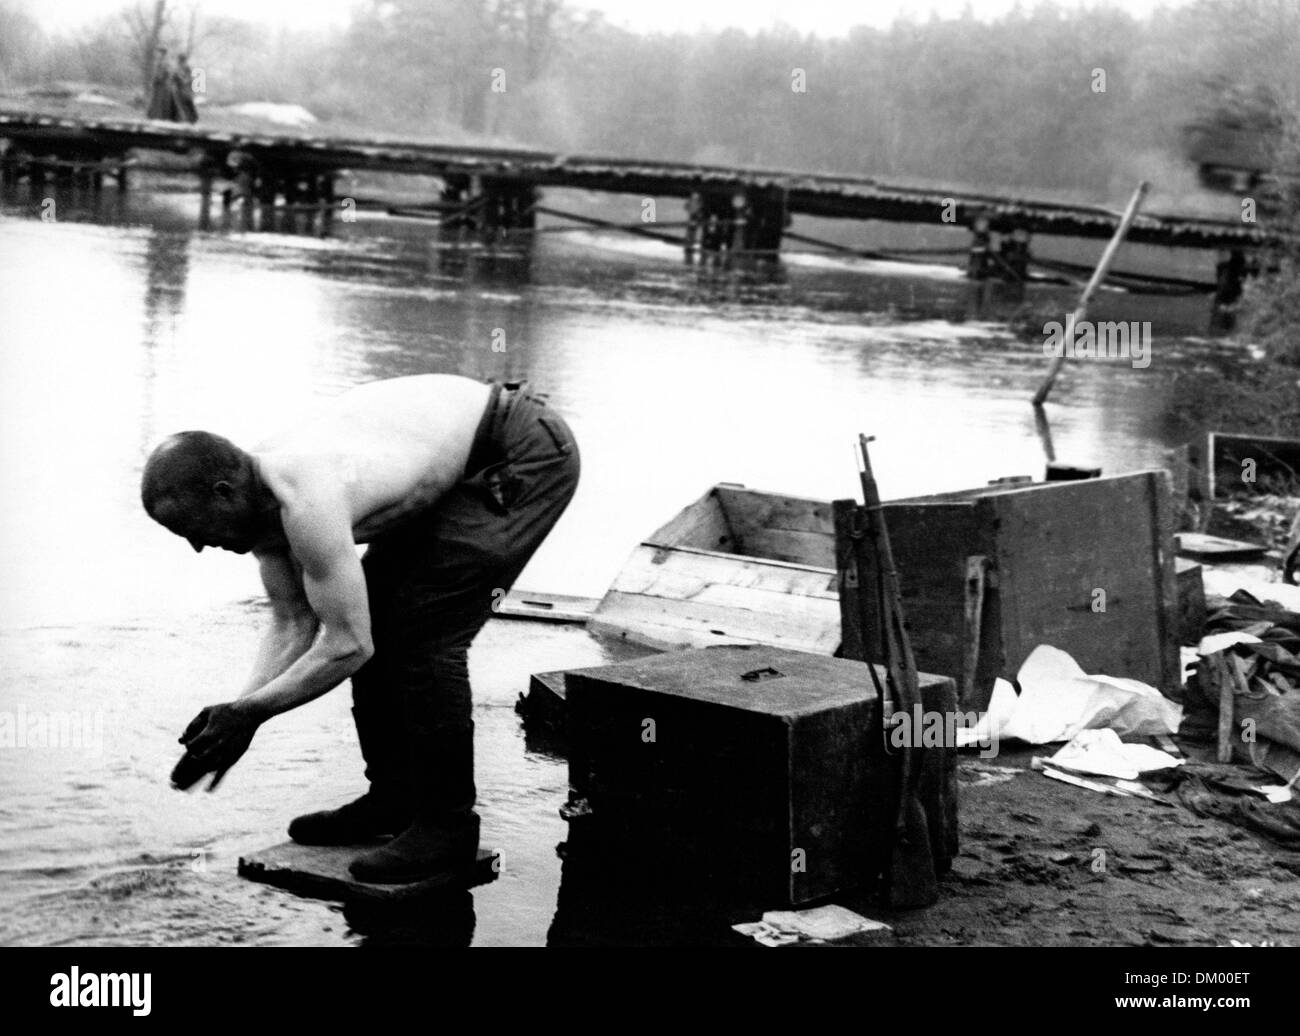 End of the war in Berlin in 1945 - A soldier washes himself in the Spree River at dawn, having put his rifle aside. Stock Photo